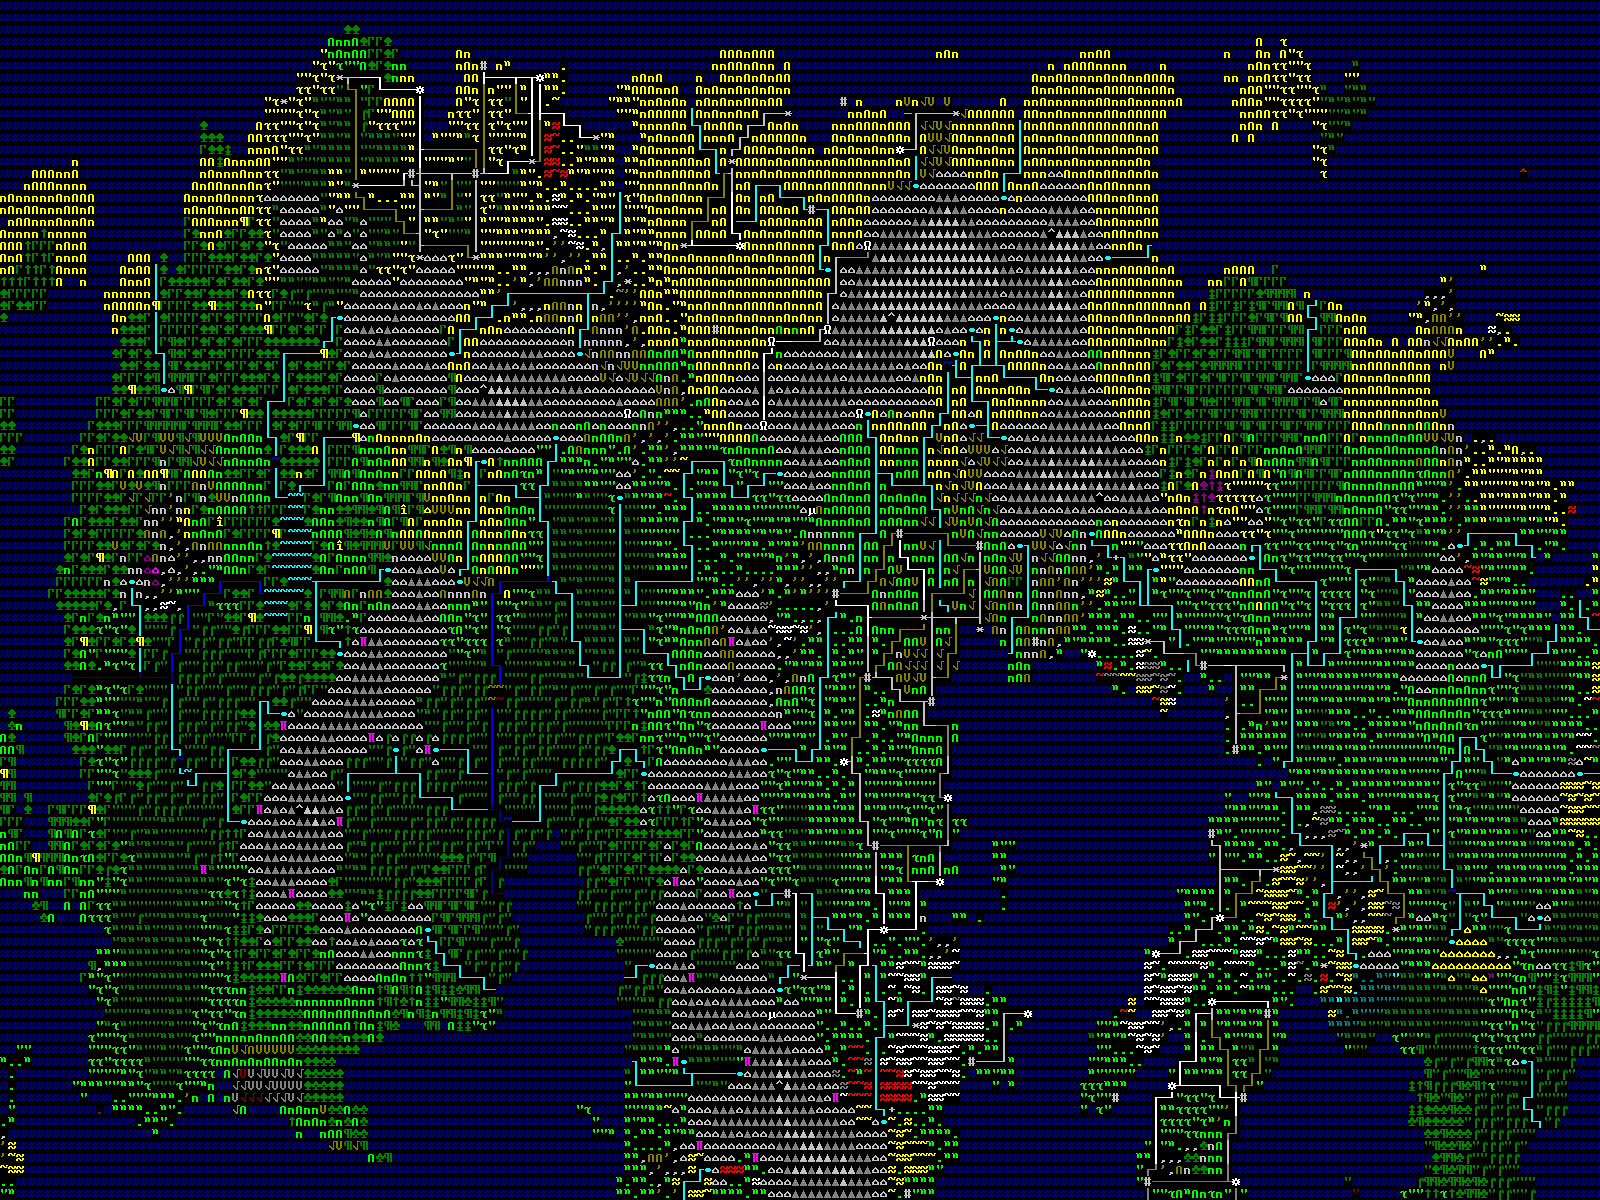 Dwarf Fortress is getting an HD remaster, and is coming to Steam